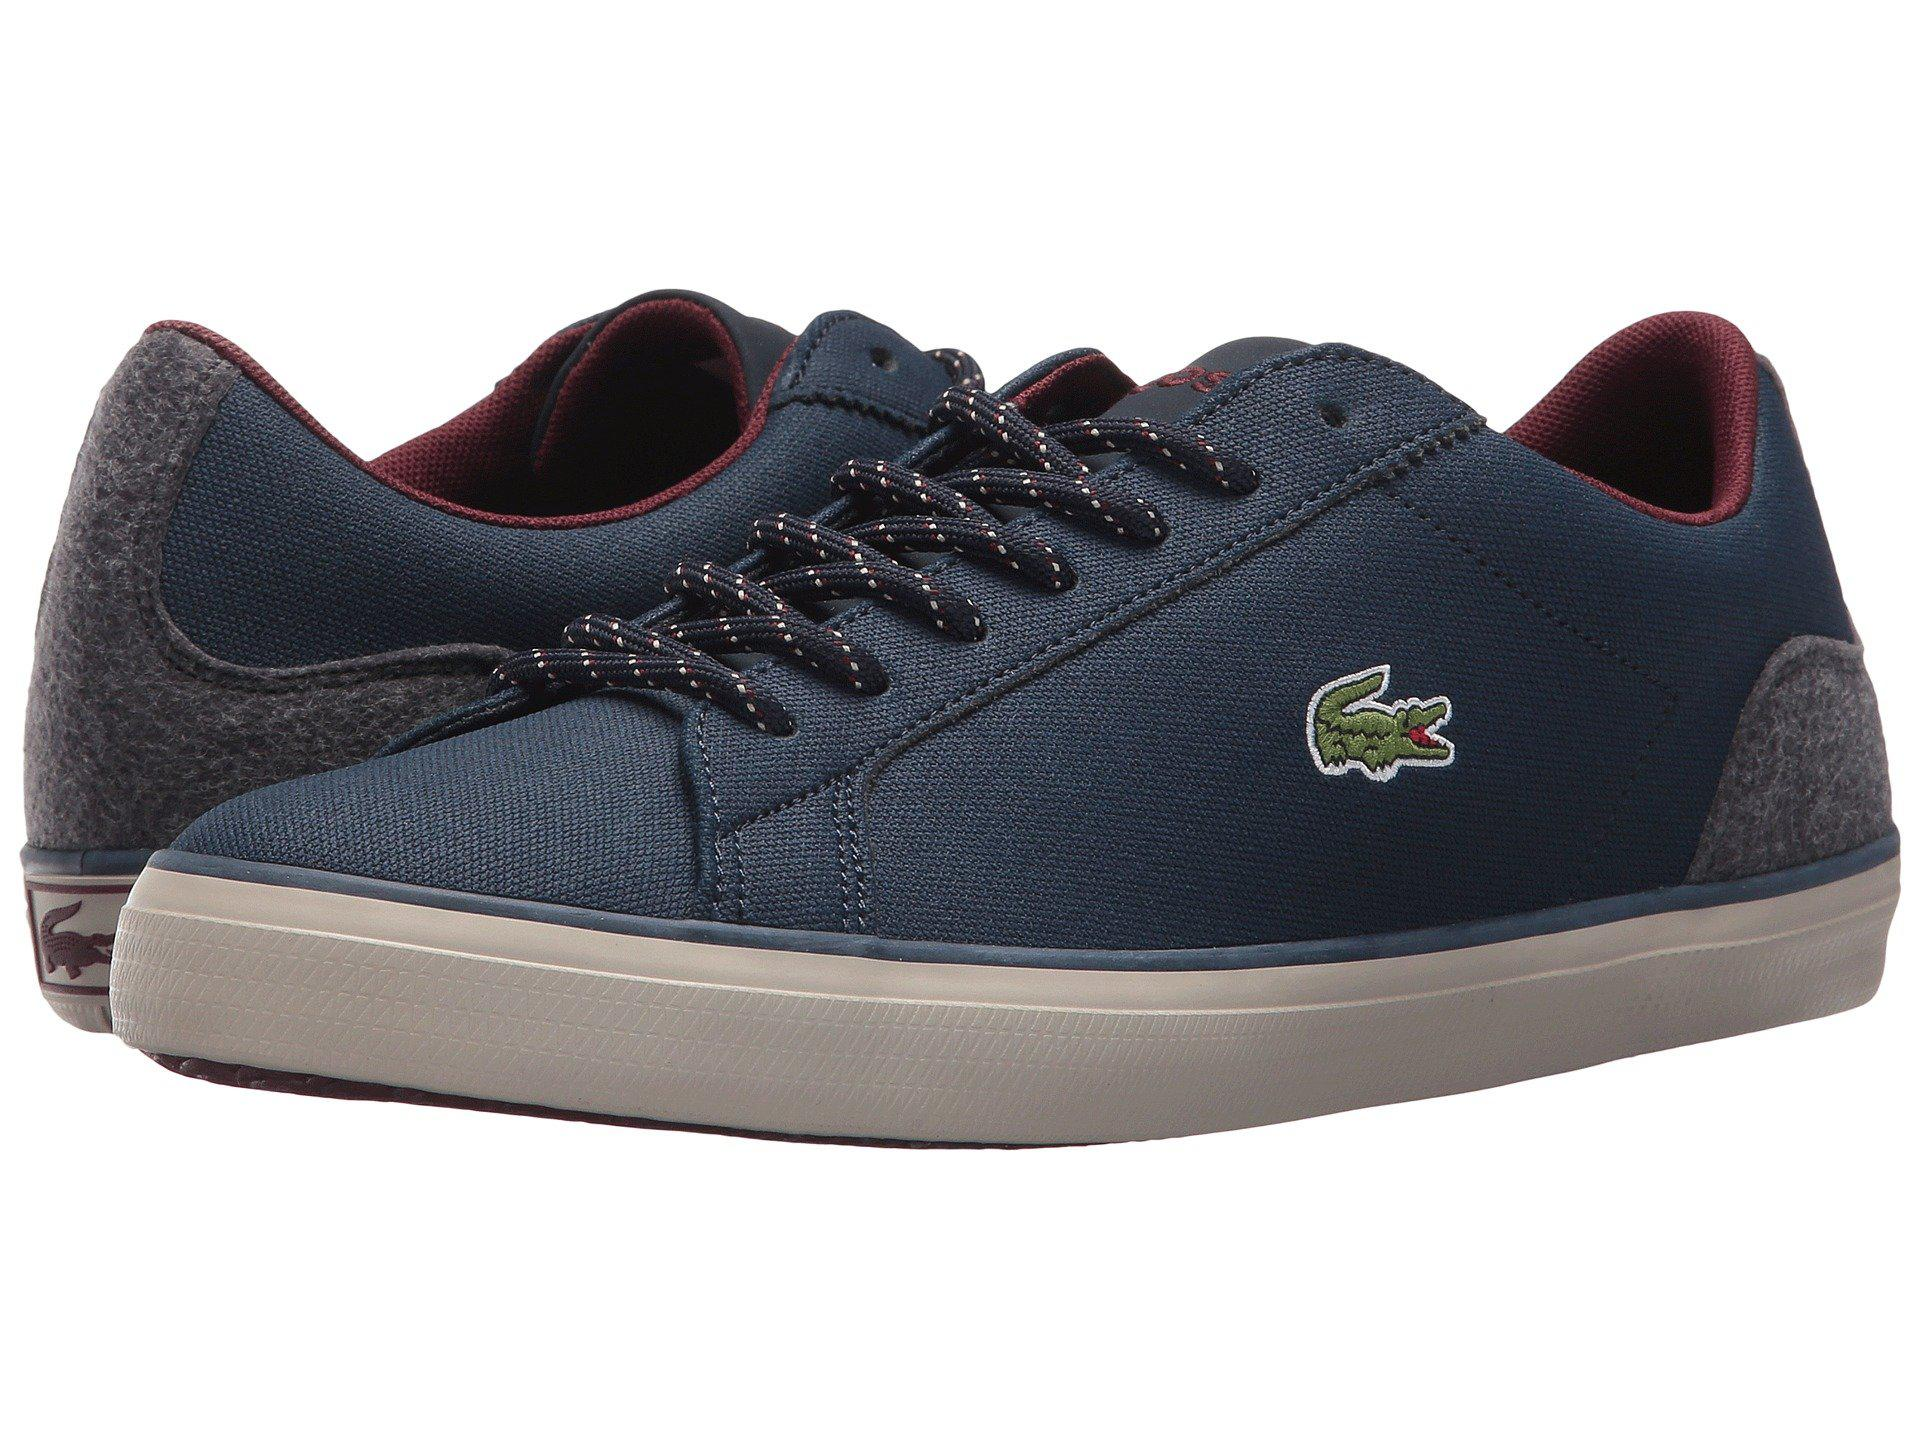 bfd6b4ec5572 Lyst - Lacoste Lerond 417 1 Cam (navy) Men s Shoes in Blue for Men